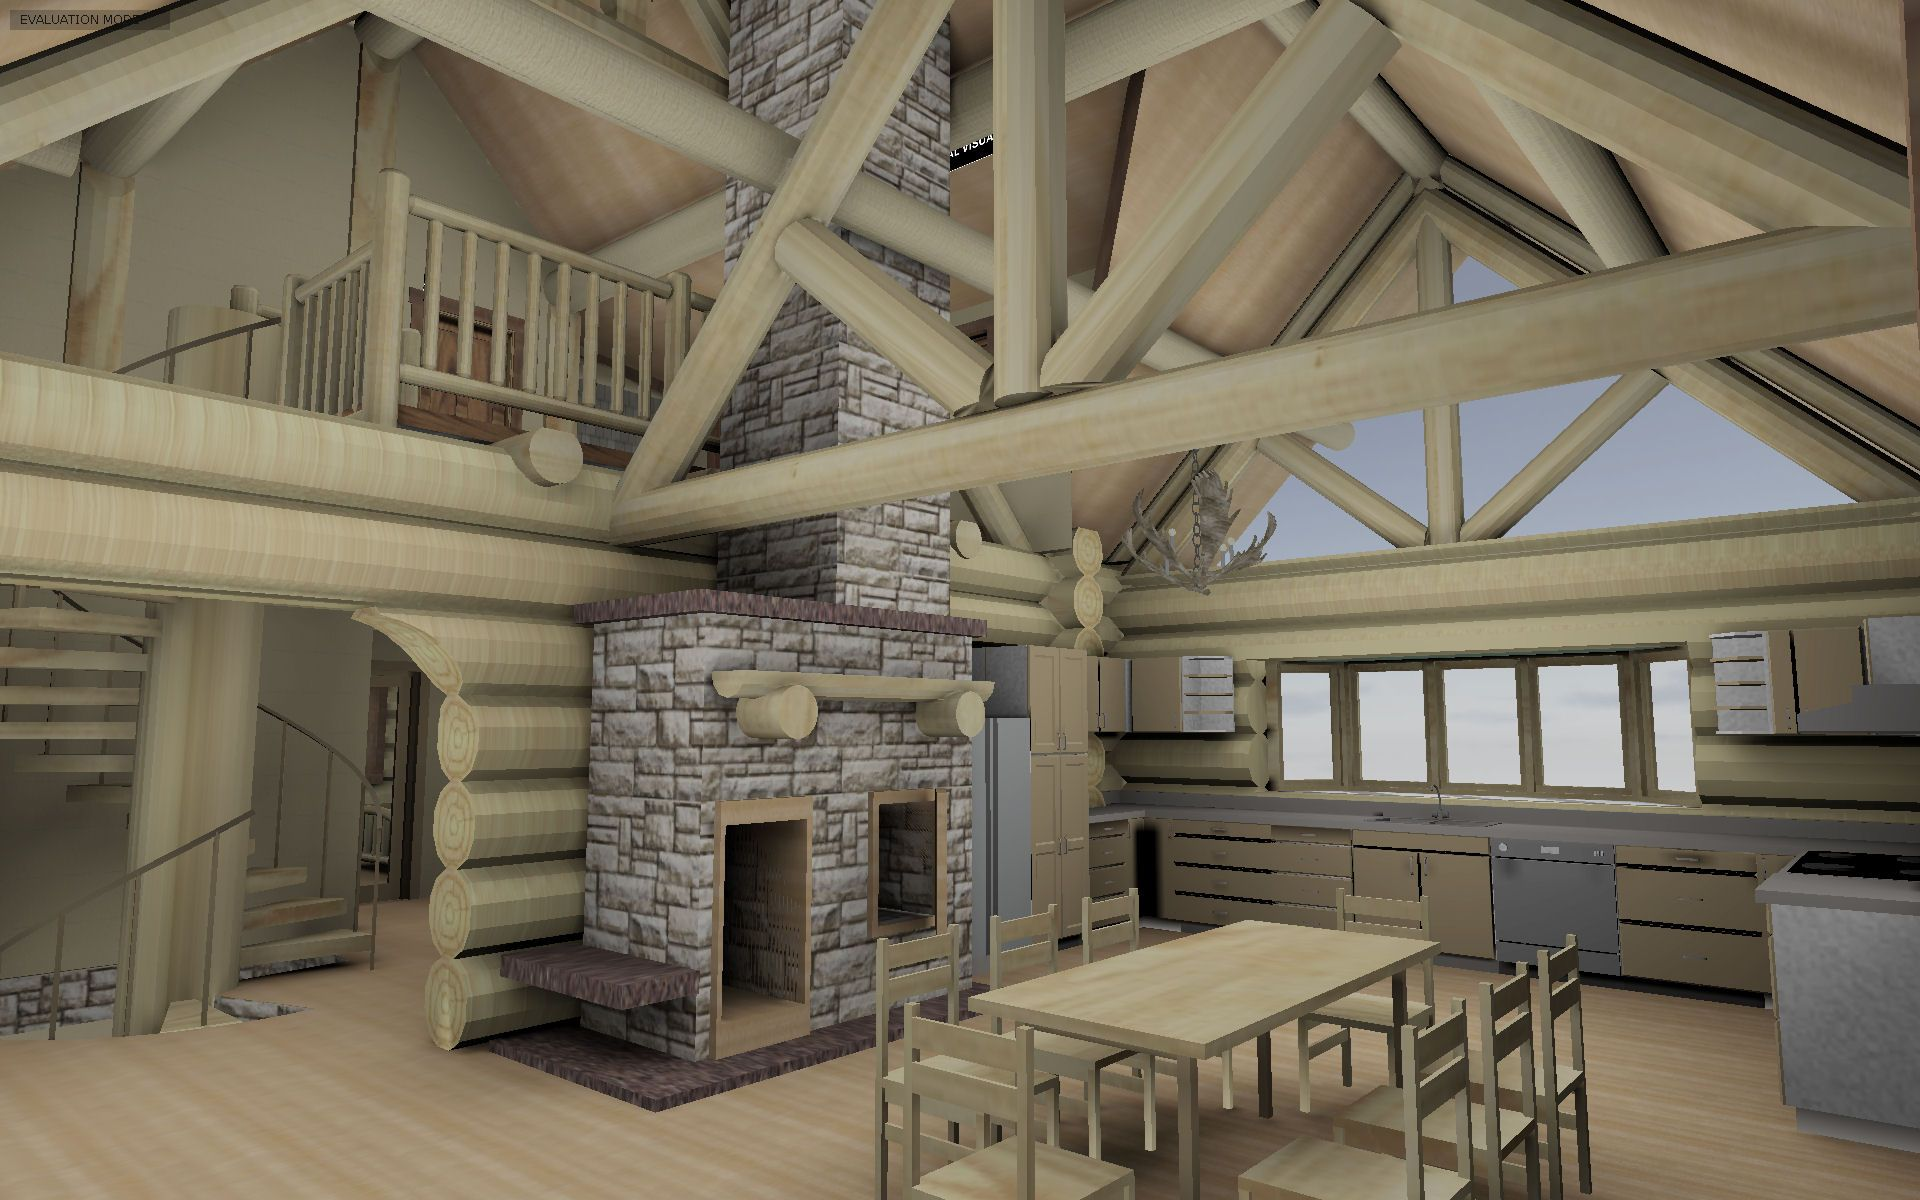 Log home design software free online interior design tool with traditional the log home neighborhood design for 3d interior hd picture here